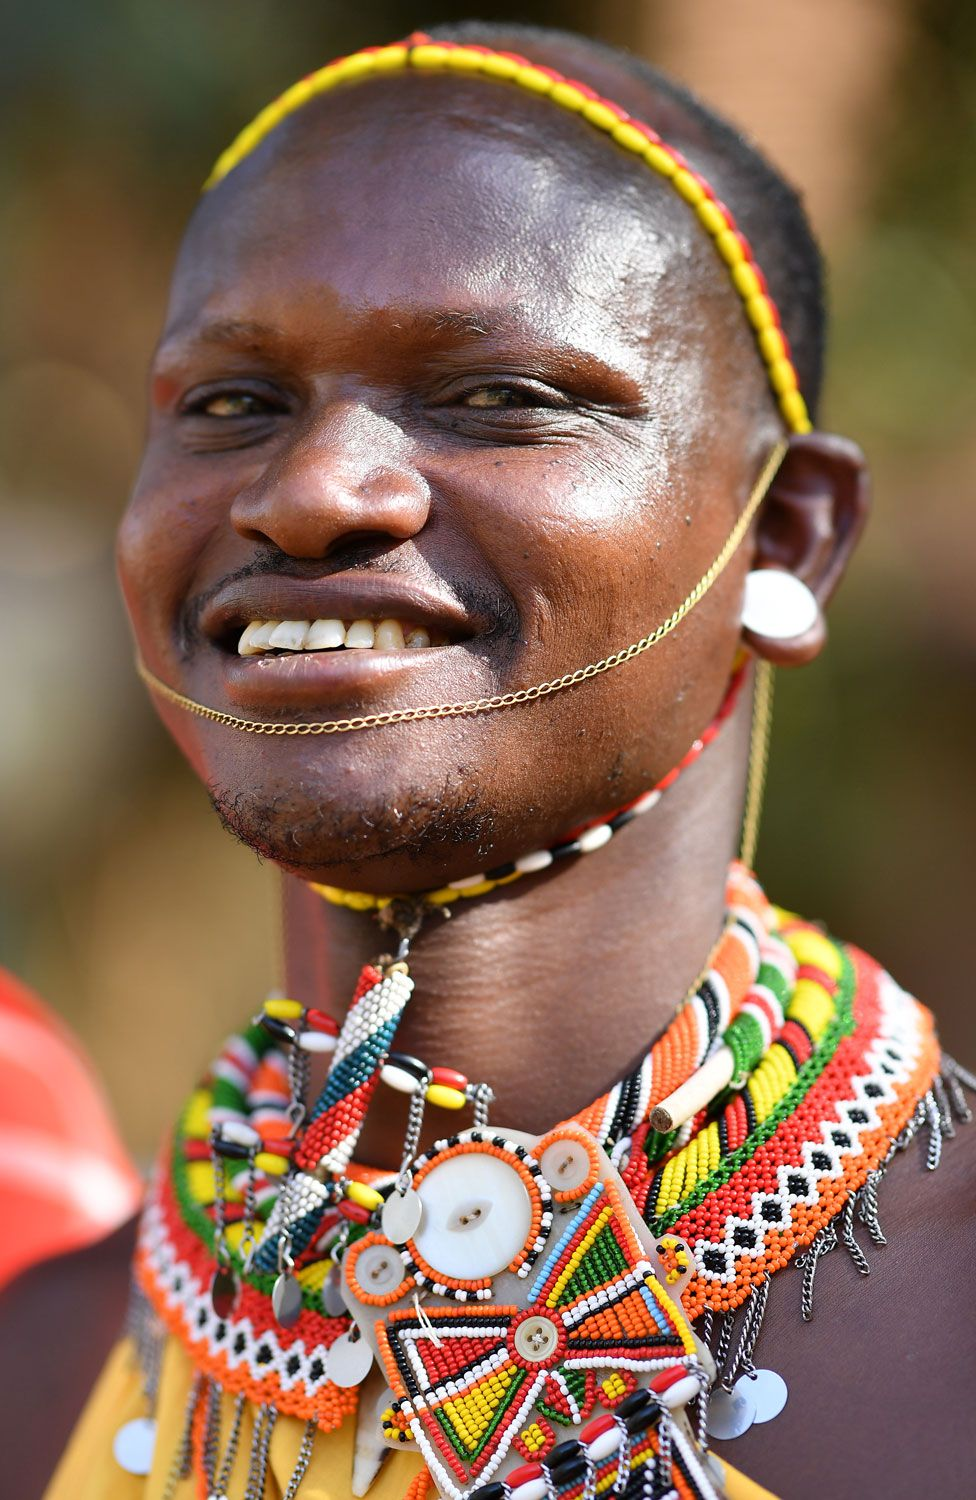 A man wearing traditional Masaai dress on March 13, 2019